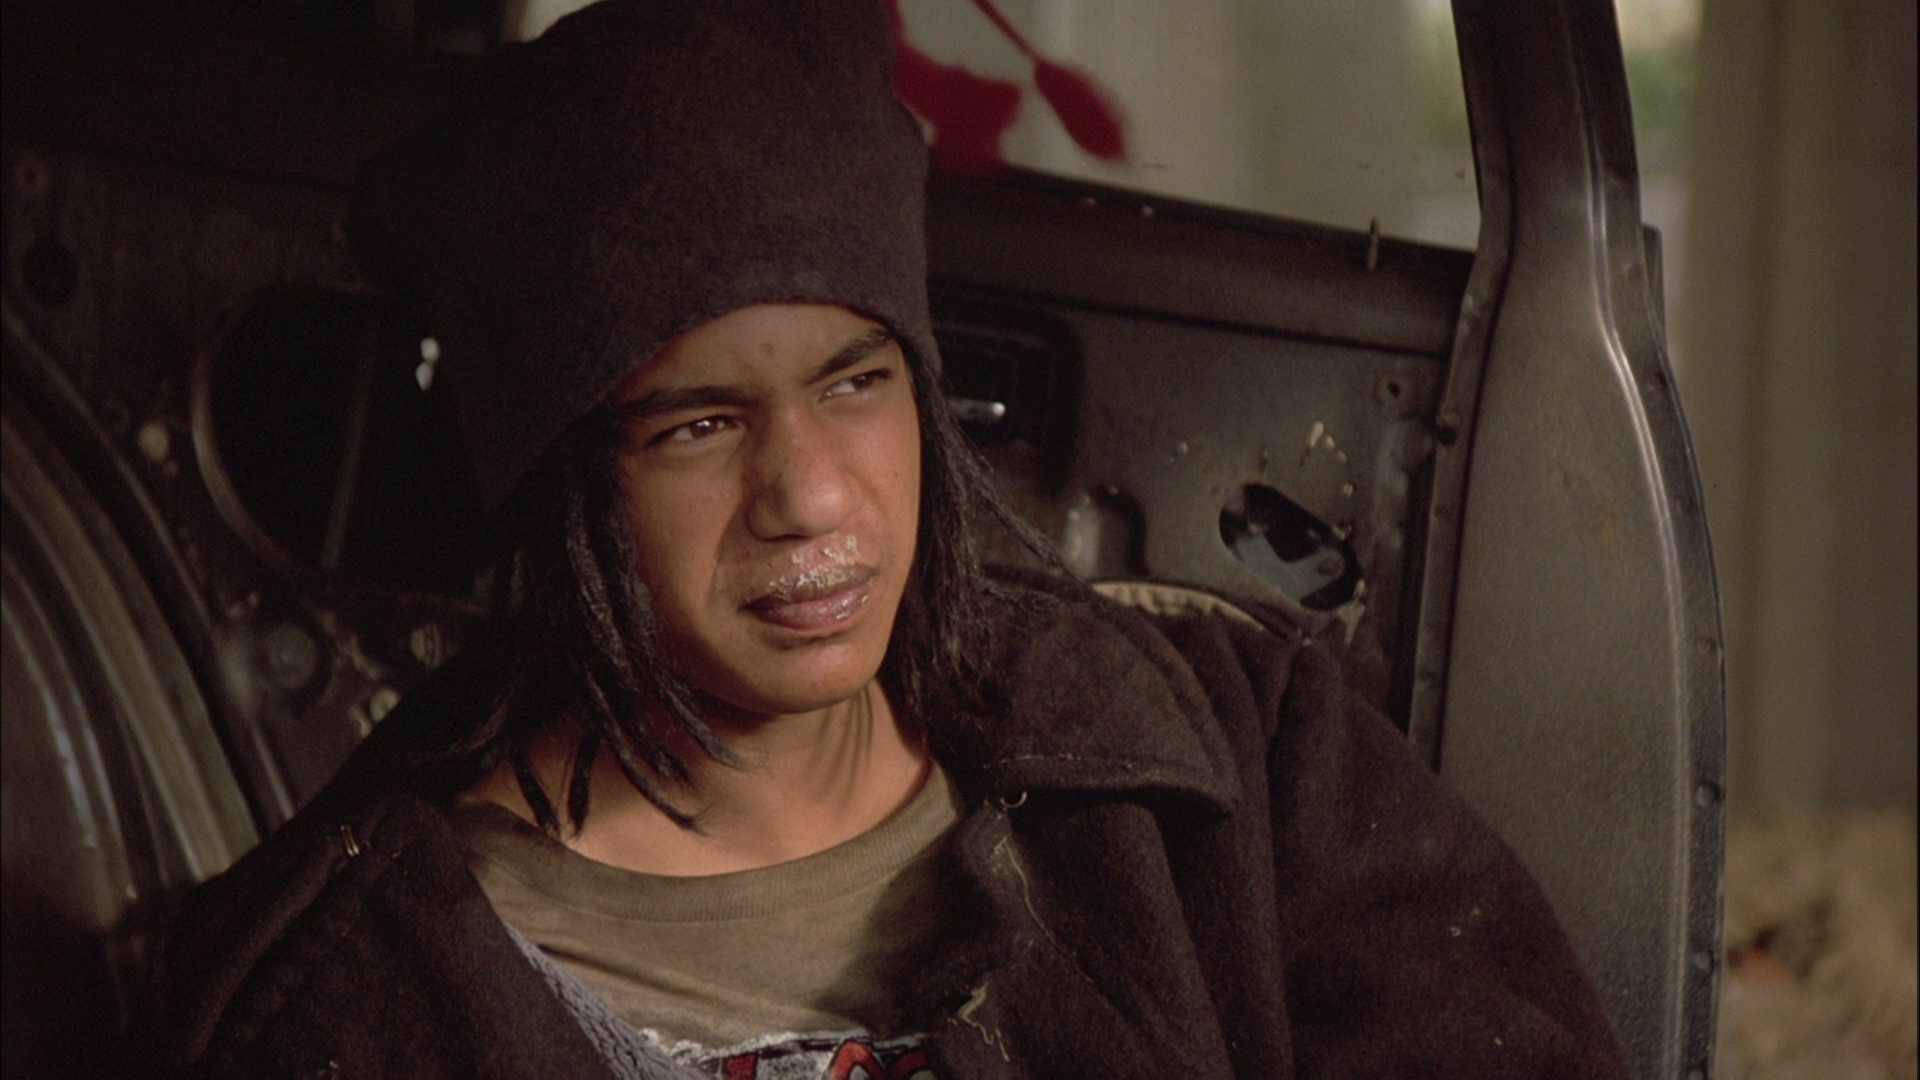 once were warriors blu ray review com screenshots taken directly from the blu ray images have not been altered during the process patreon supporters are able to access these screens early